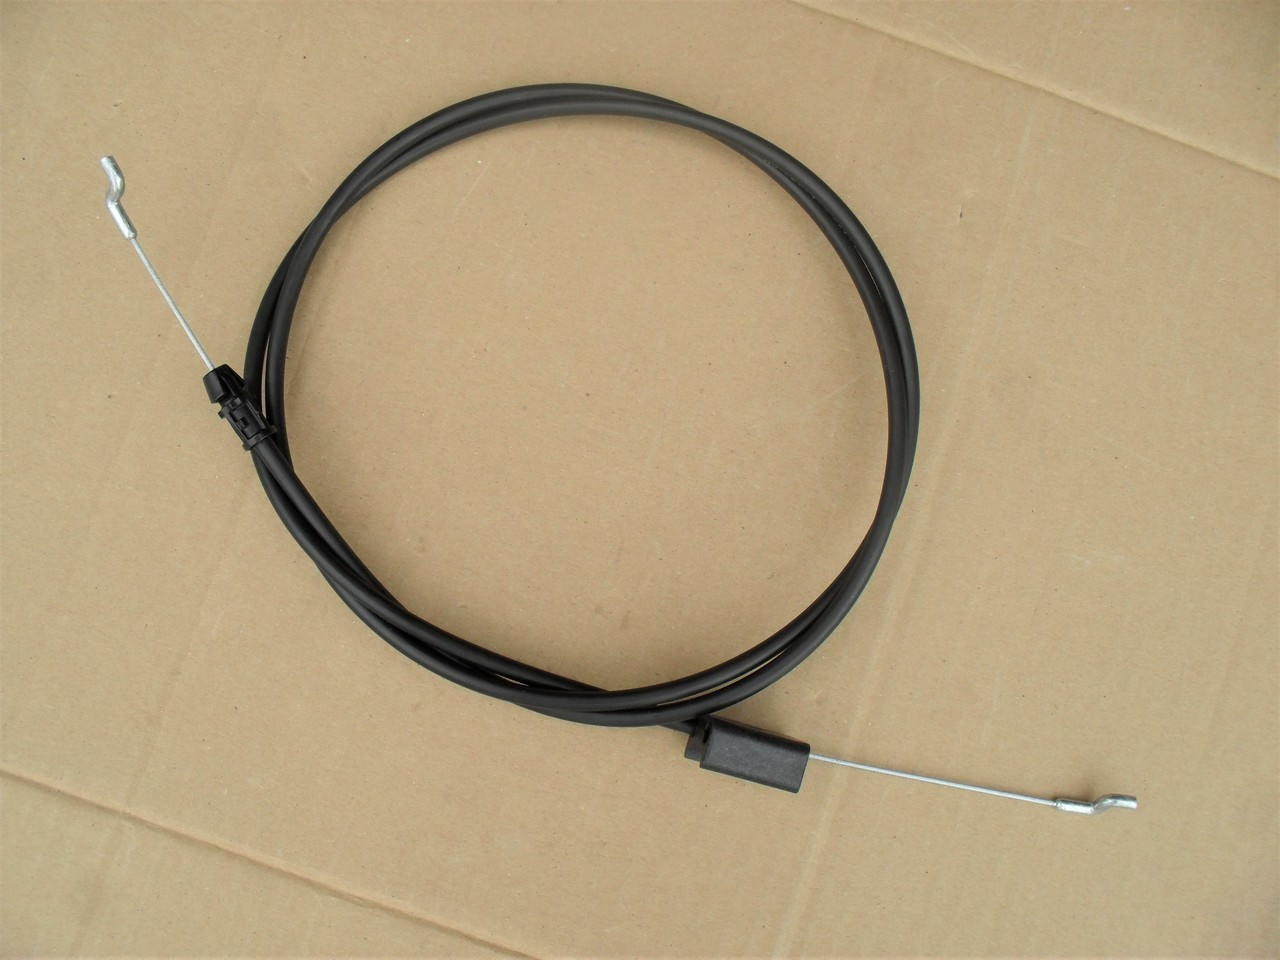 Stens 290-713 Mowers Control Cable AYP 133107 532133107 Husqvarna 532133107